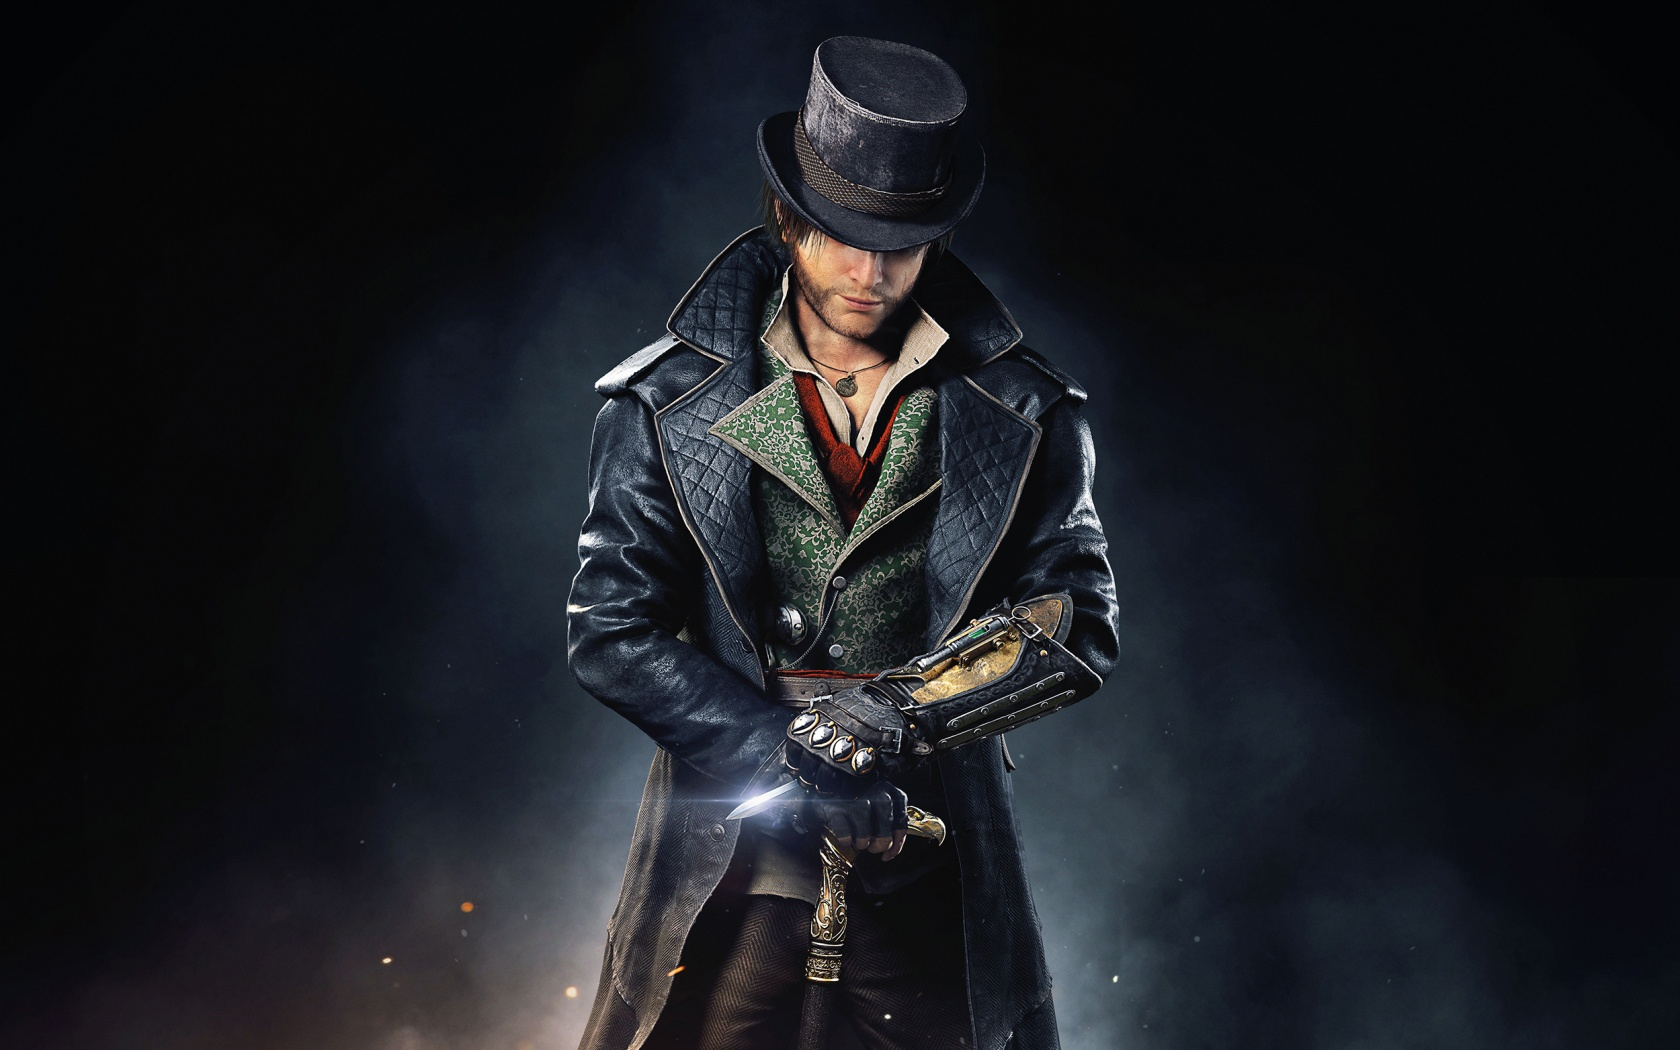 Jacob Assassin's Creed Syndicate